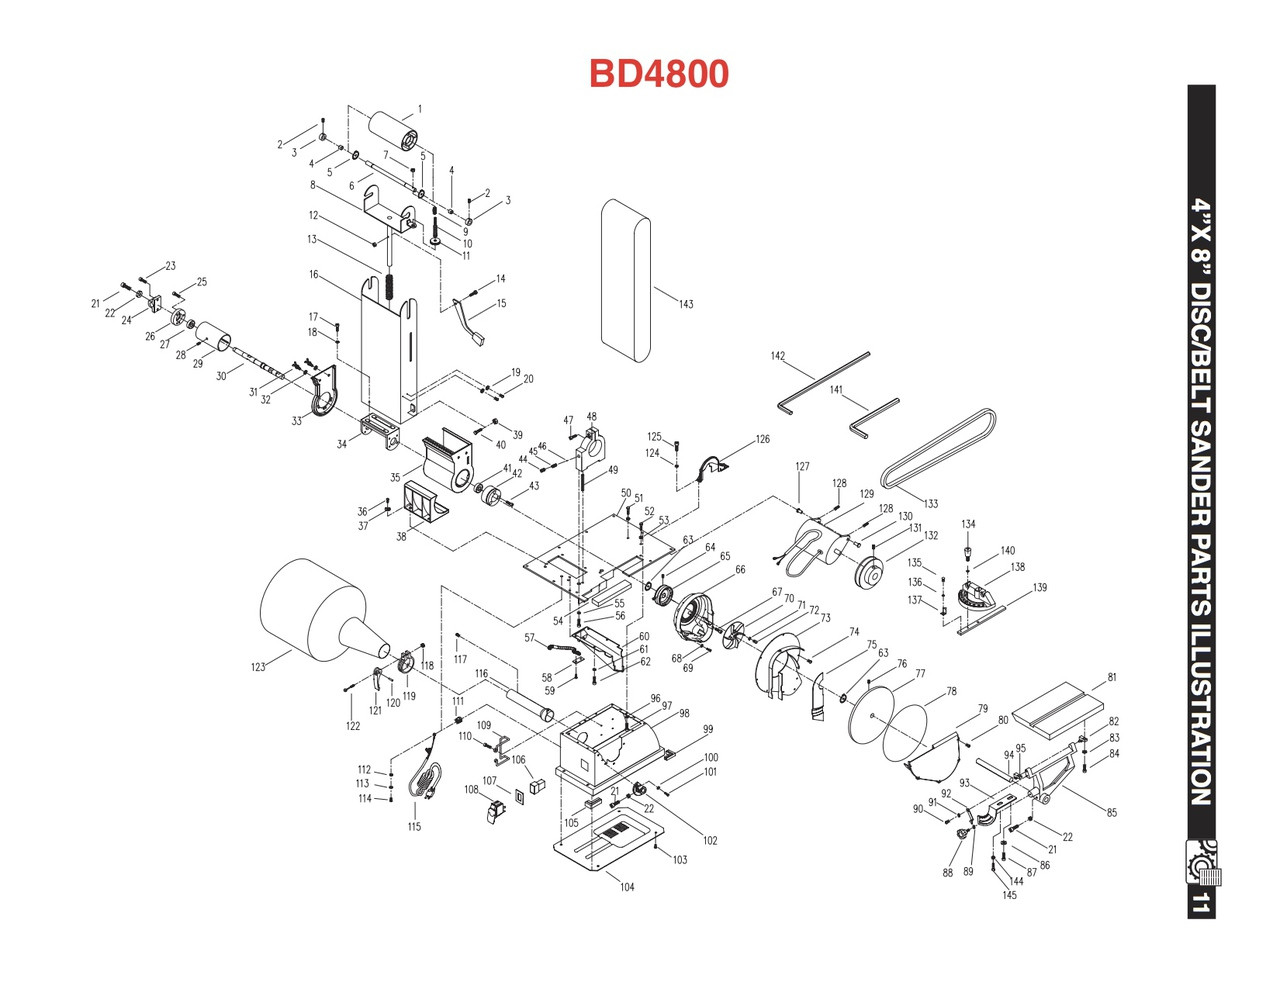 BD4800ISA Idler Drum and Shaft Assembly (KEY#1 to 6